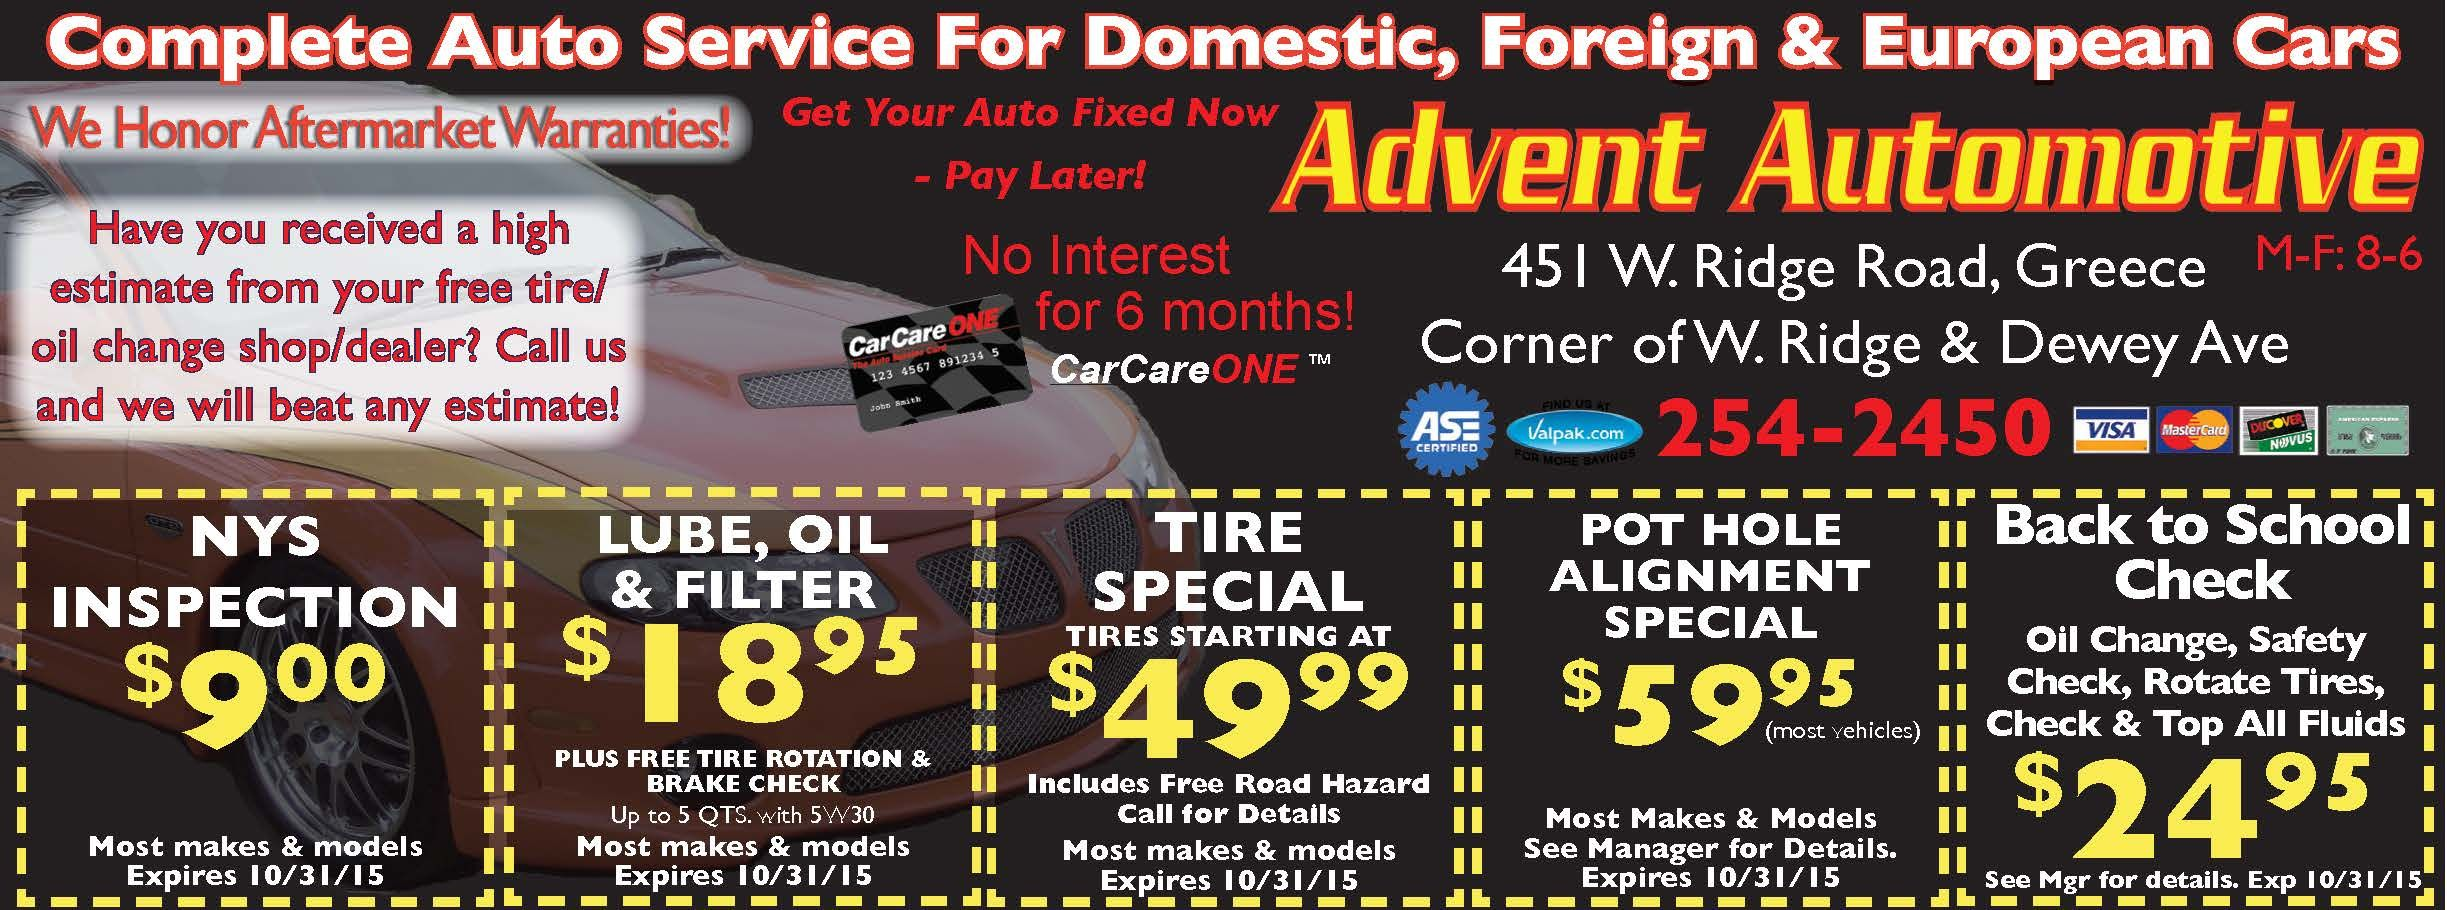 Precision Auto Service for savings on brakes front end car